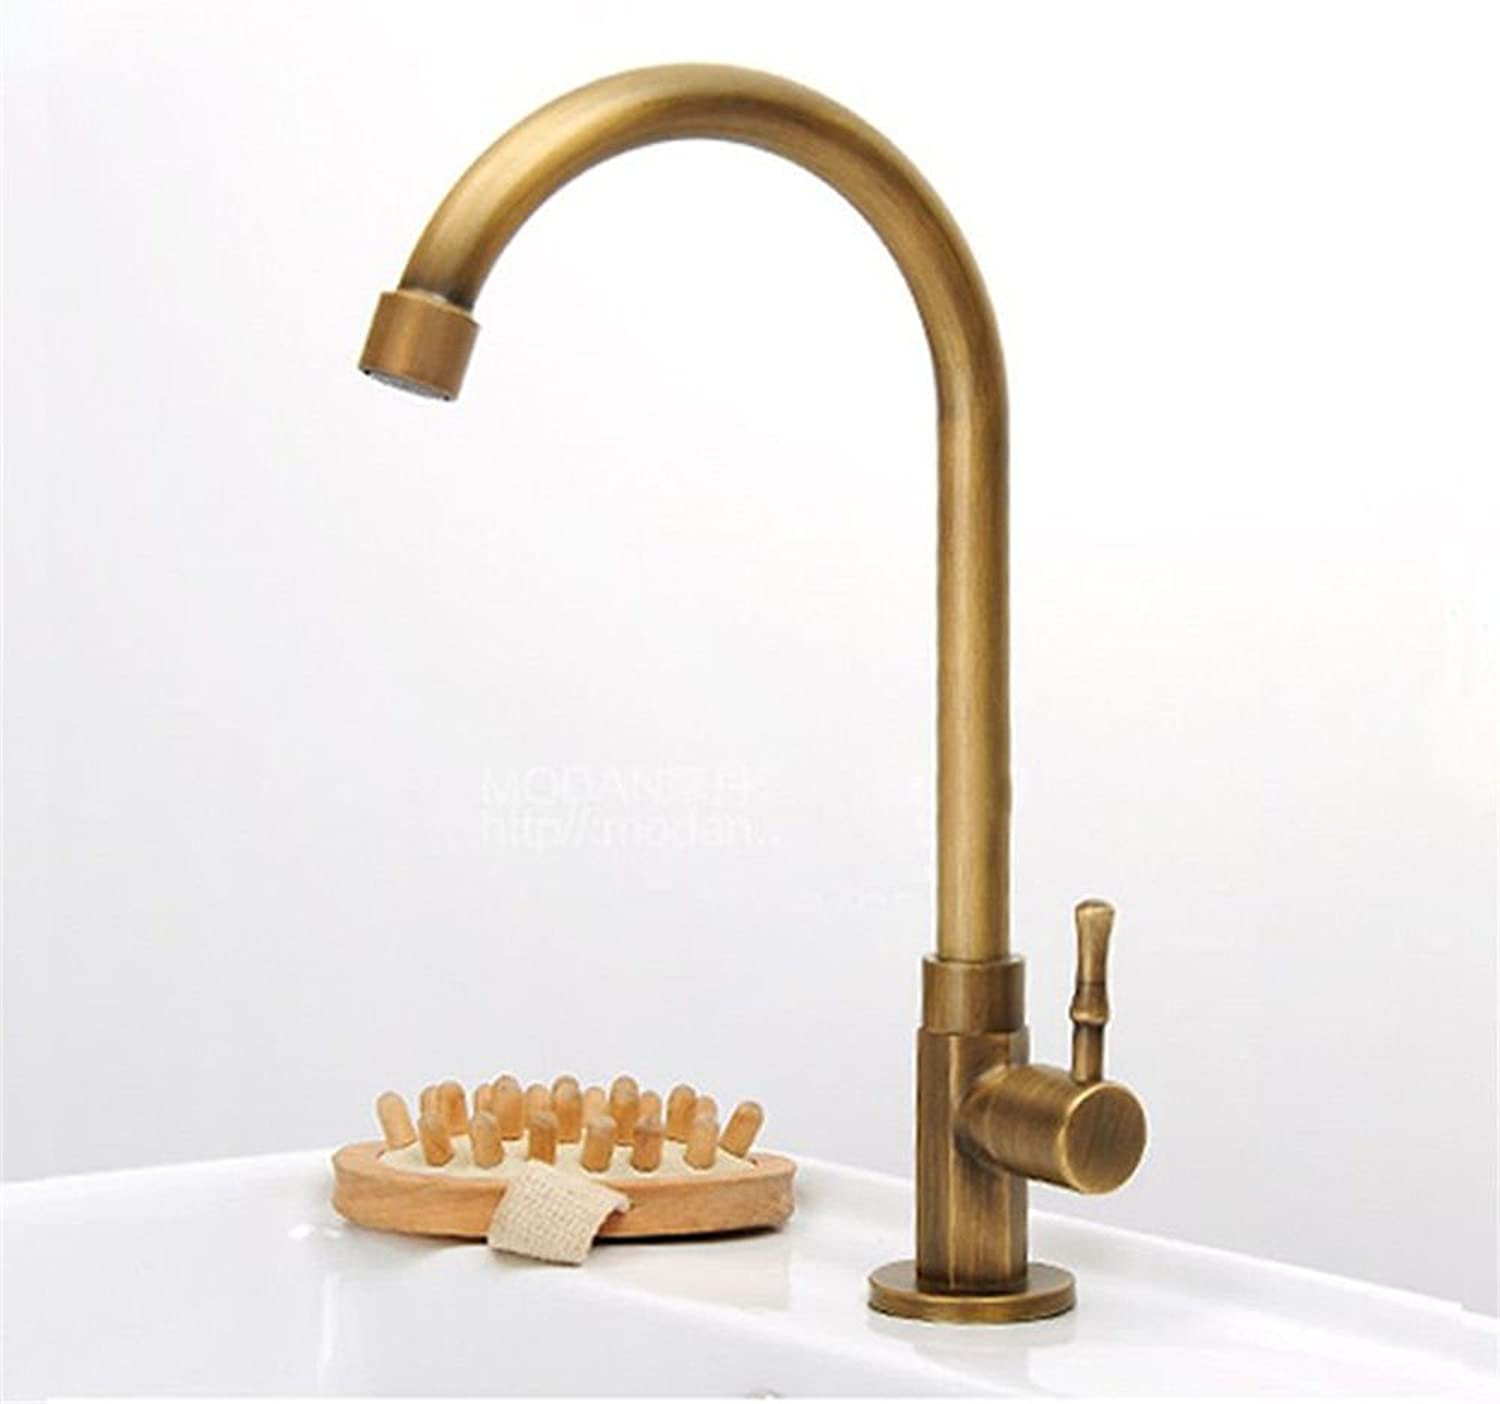 Commercial Kitchen Faucet Stainless Steel Handle Pull Out Kitchen Sink Faucet European Bronze Copper Faucet Single Cold Kitchen Basin Faucet???Antique 360 ??Degree redatable Faucet